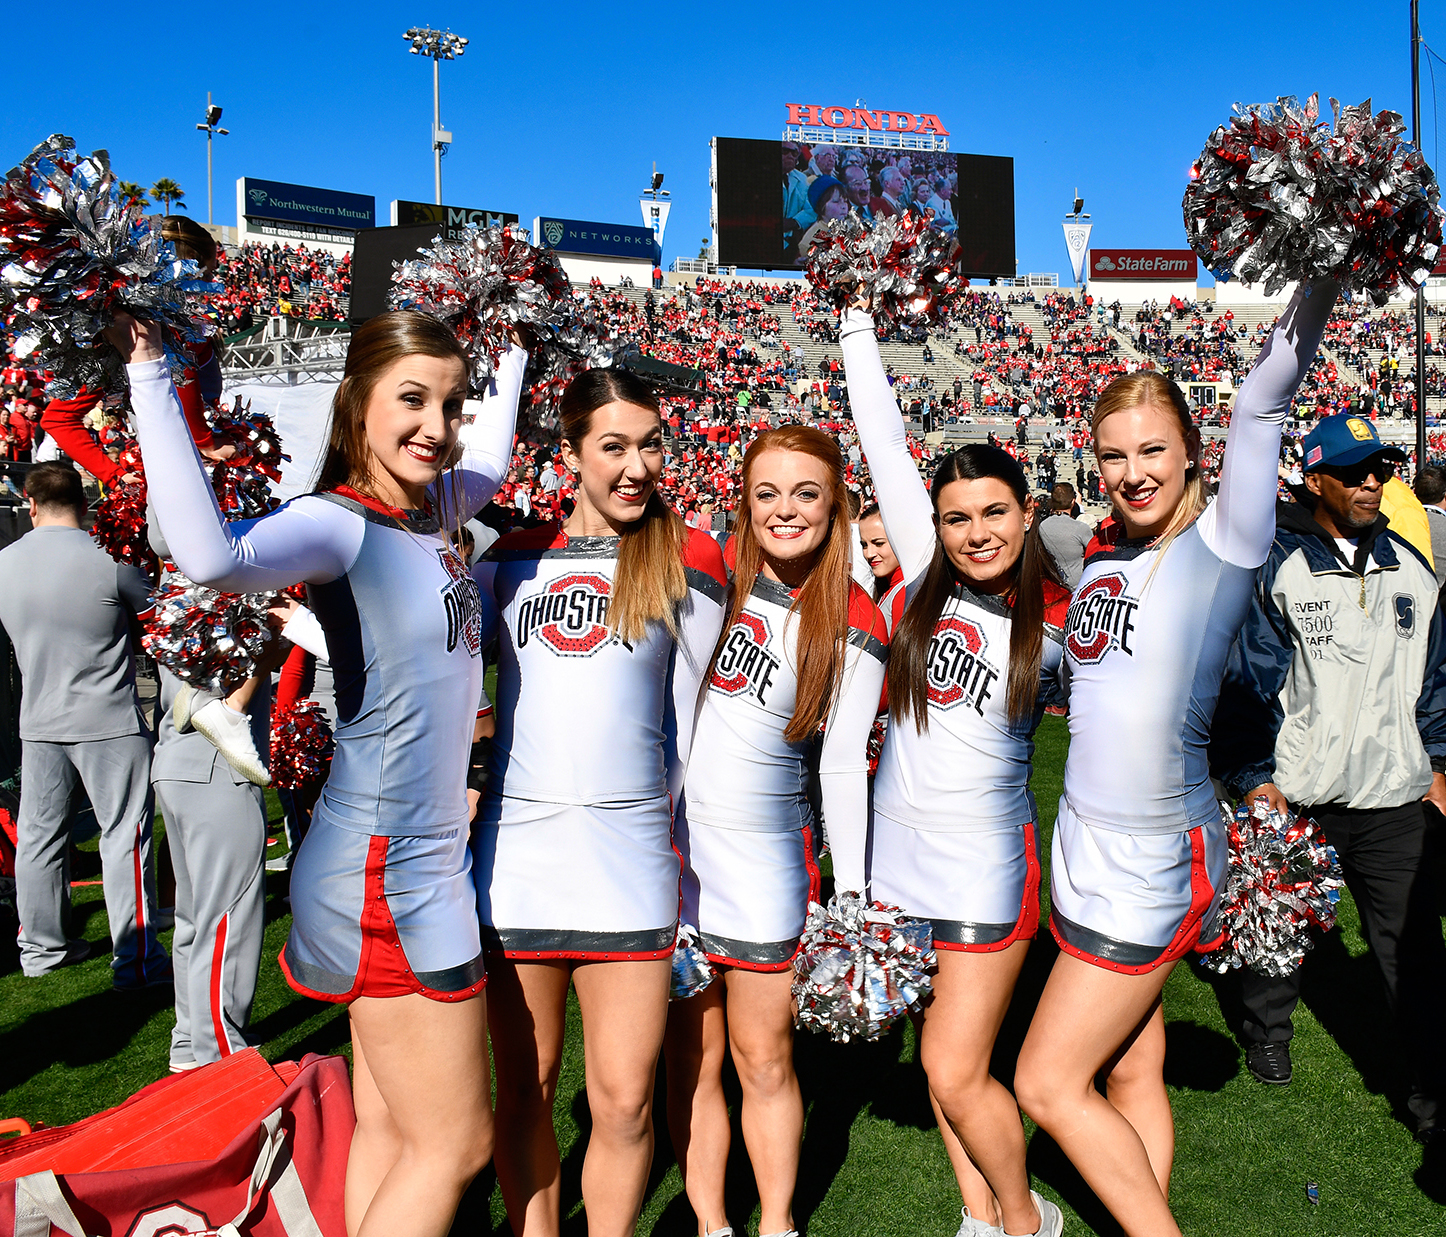 Ohio State cheerleaders get ready for the kickoff!